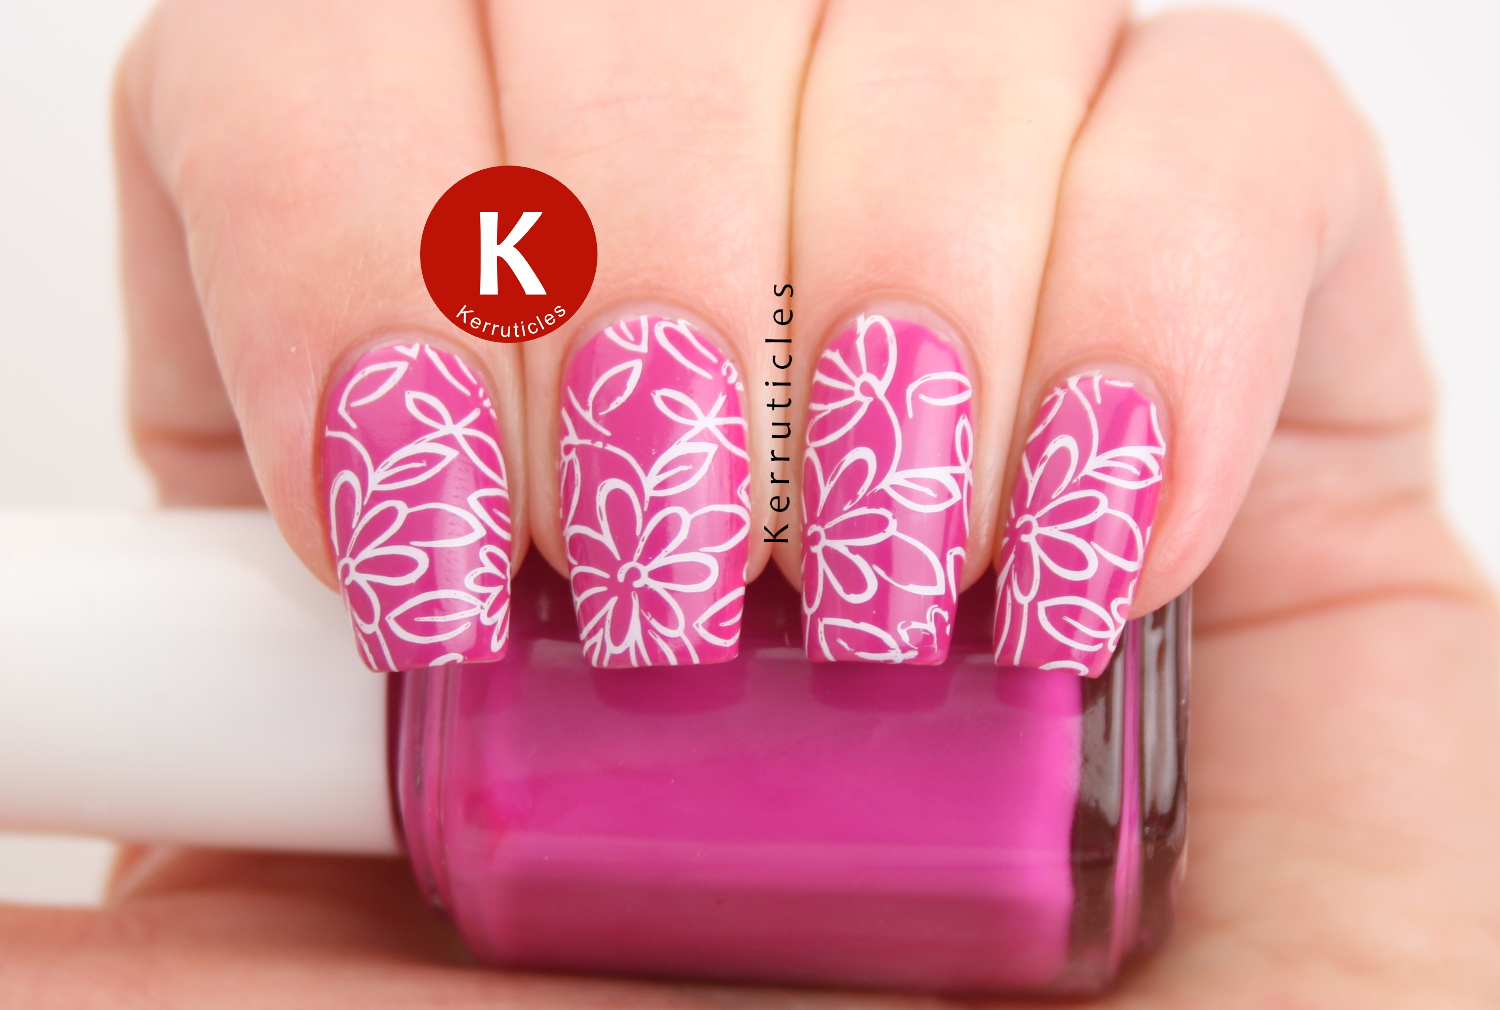 Pink floral nails using Essie Coacha'Bella and CICI&SISI 31